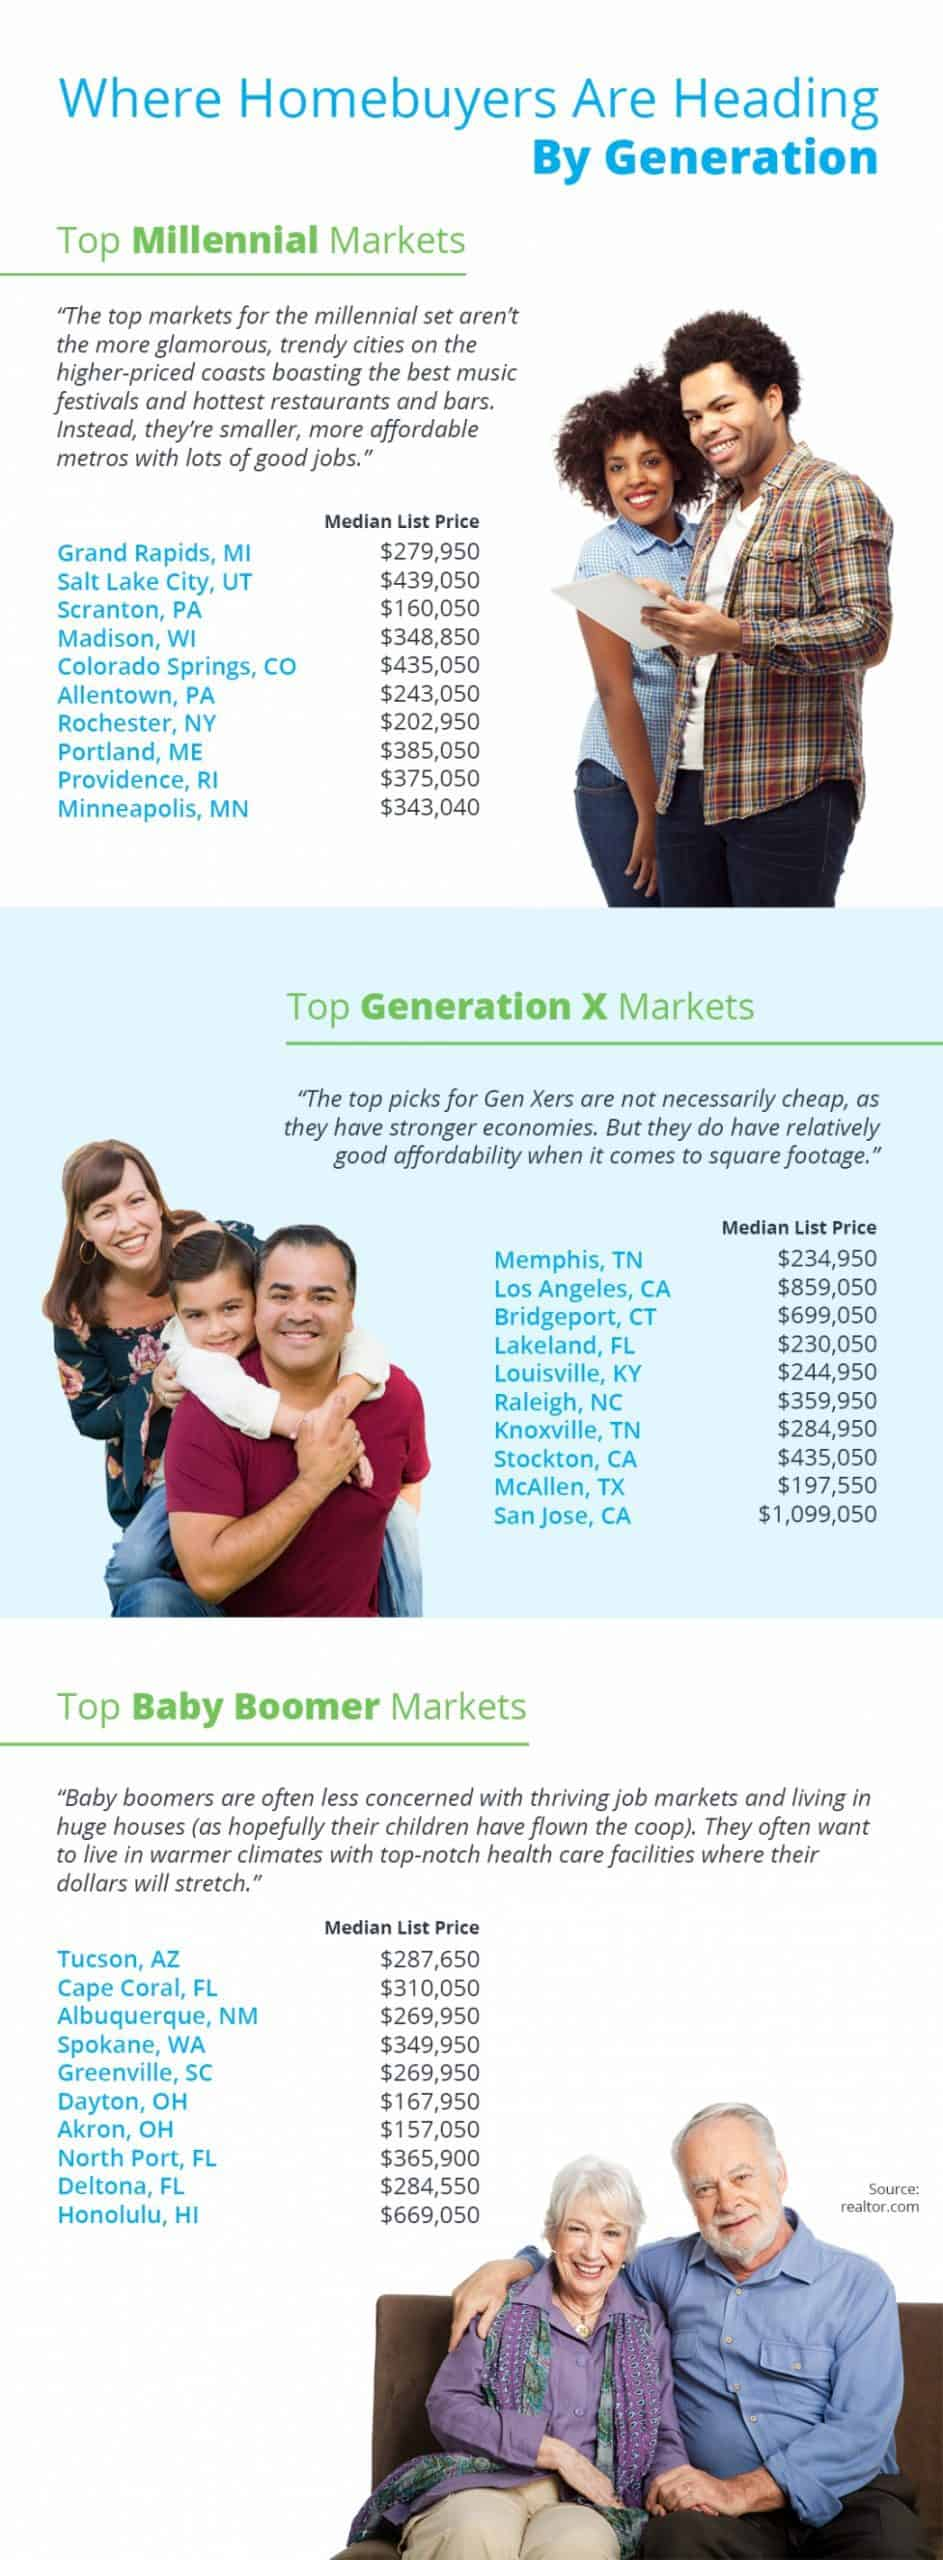 Where Homebuyers Are Heading By Generation